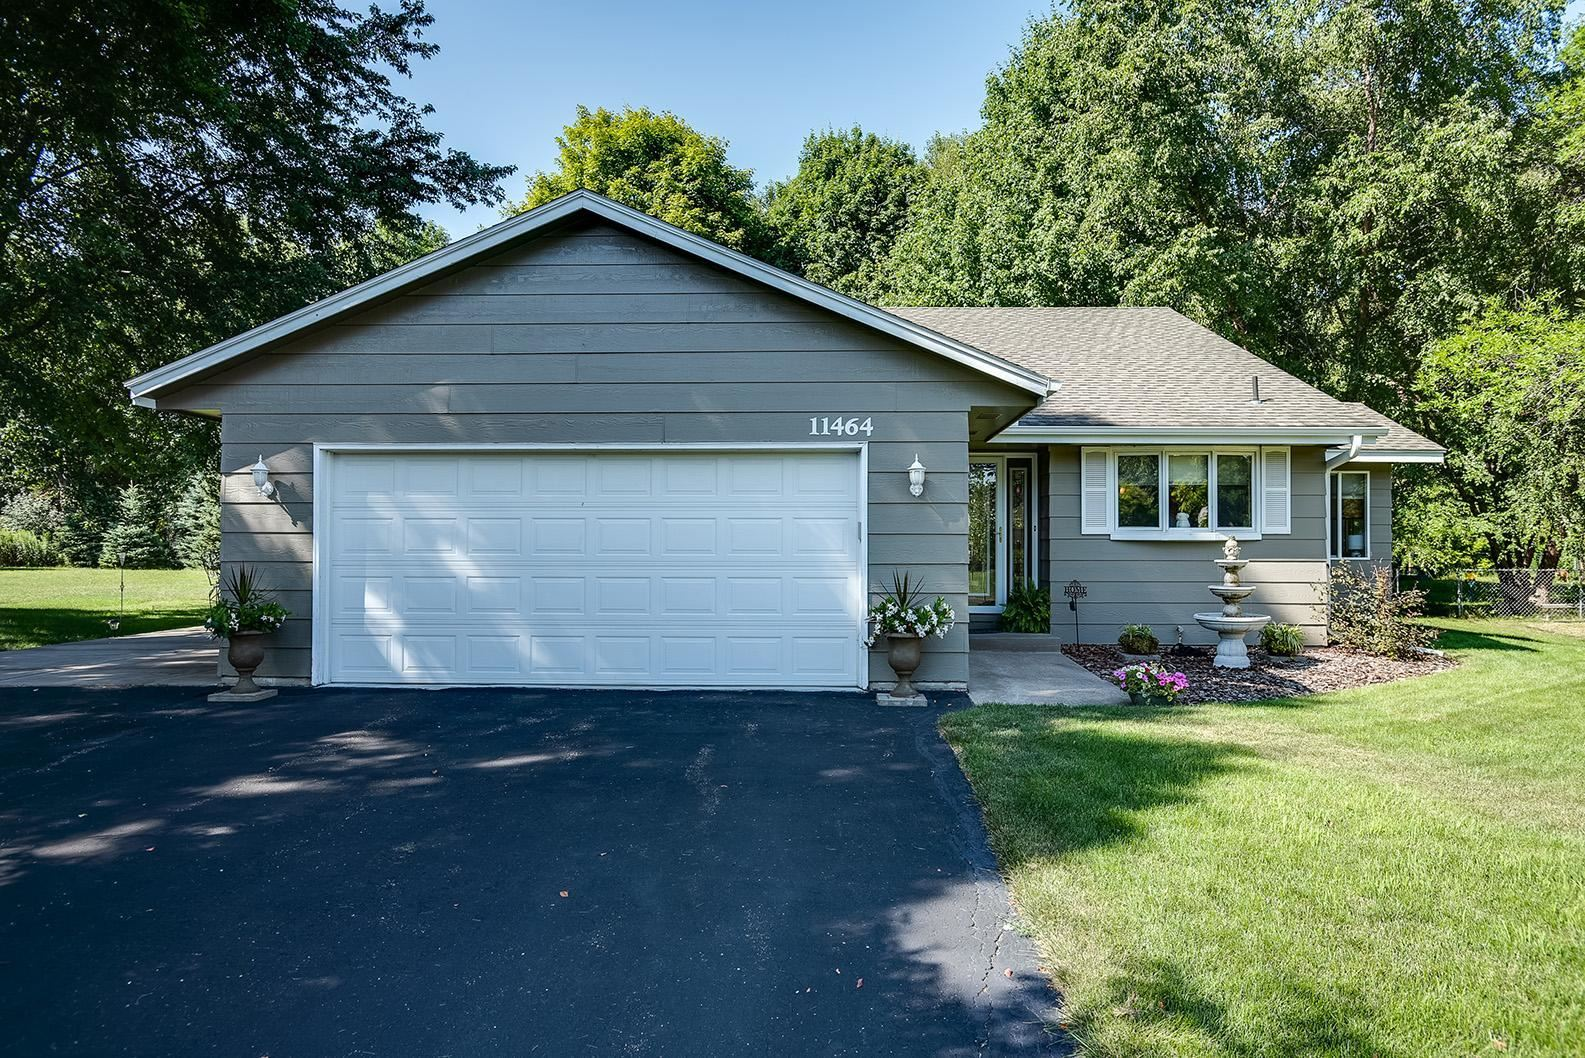 11464 100th Place N, Maple Grove, MN 55369 - MLS#: 5633311